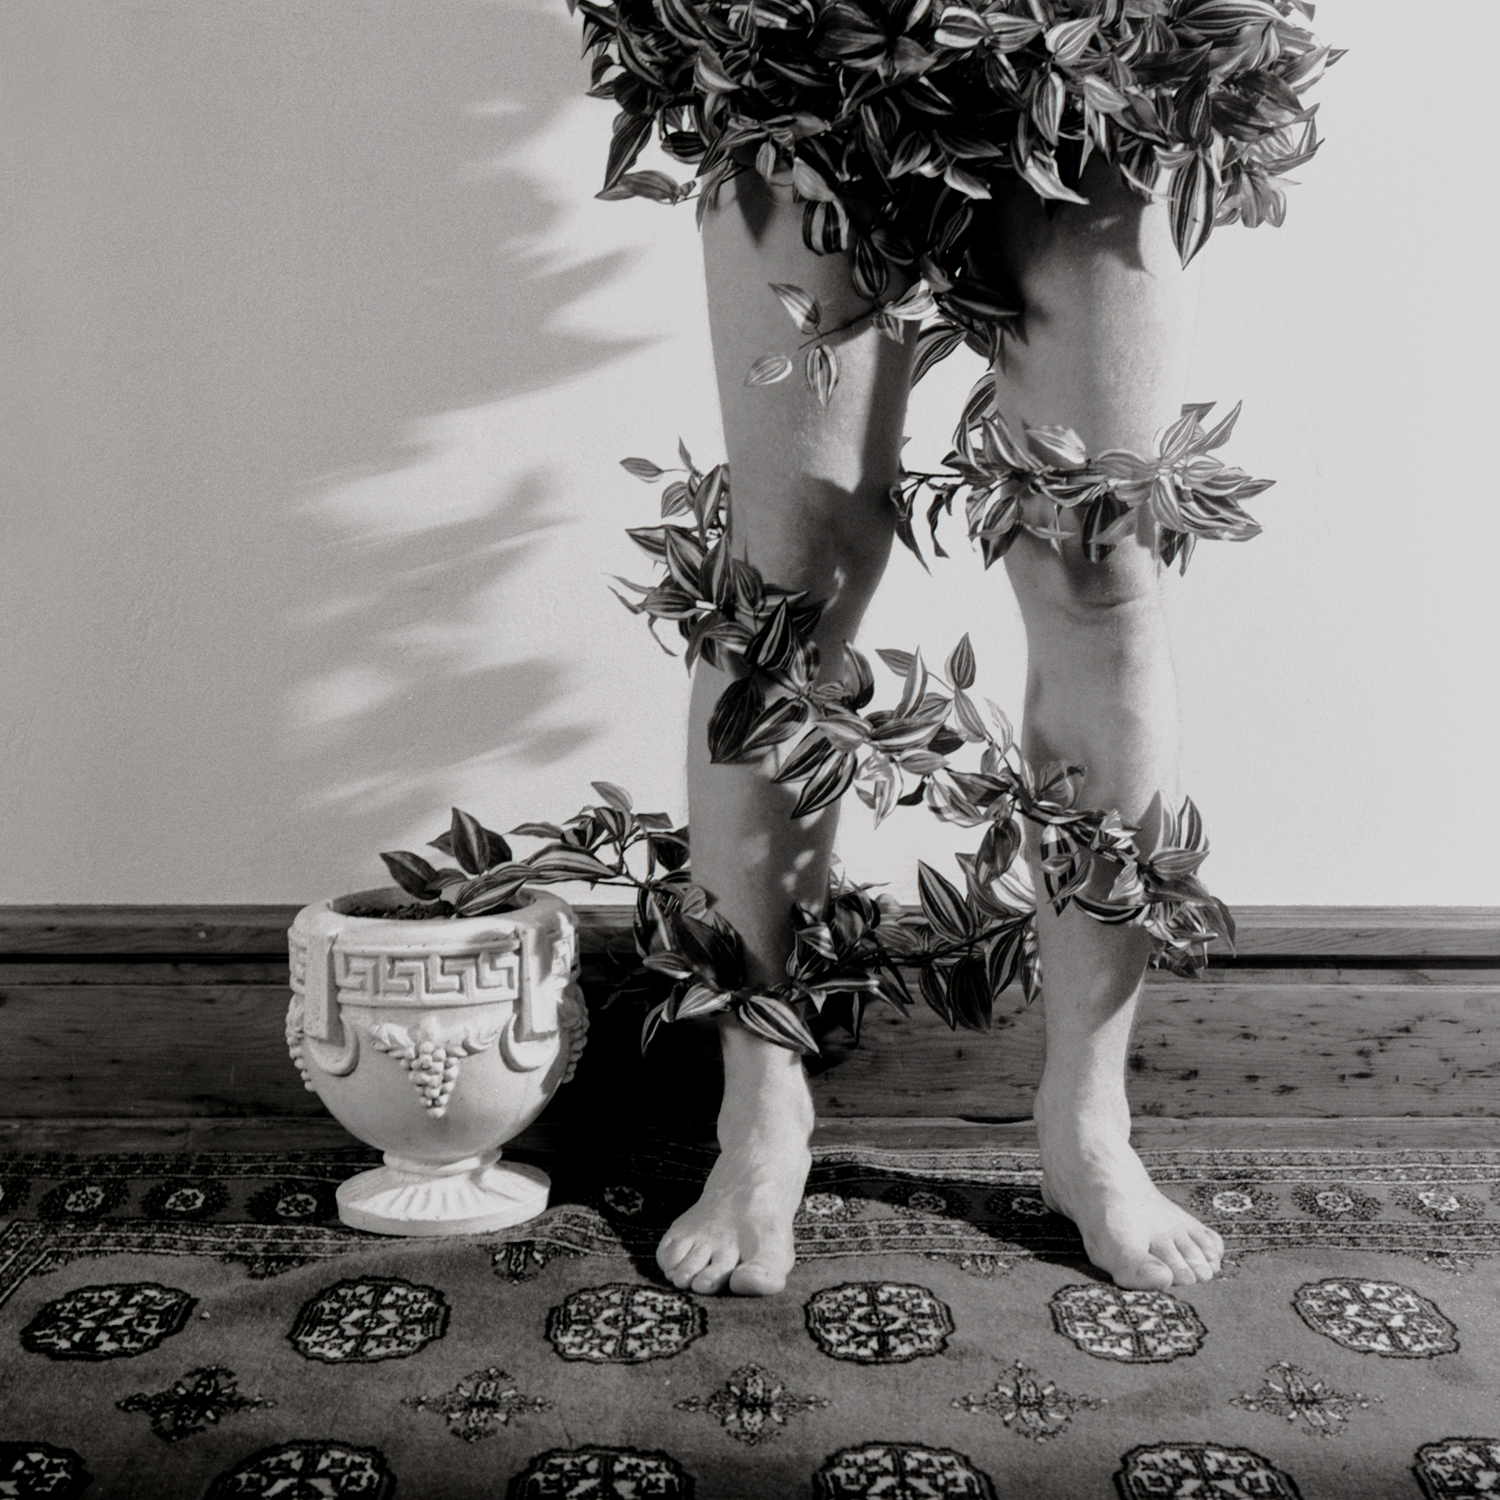 Wrapped Legs, 2005, archival pigment print on paper